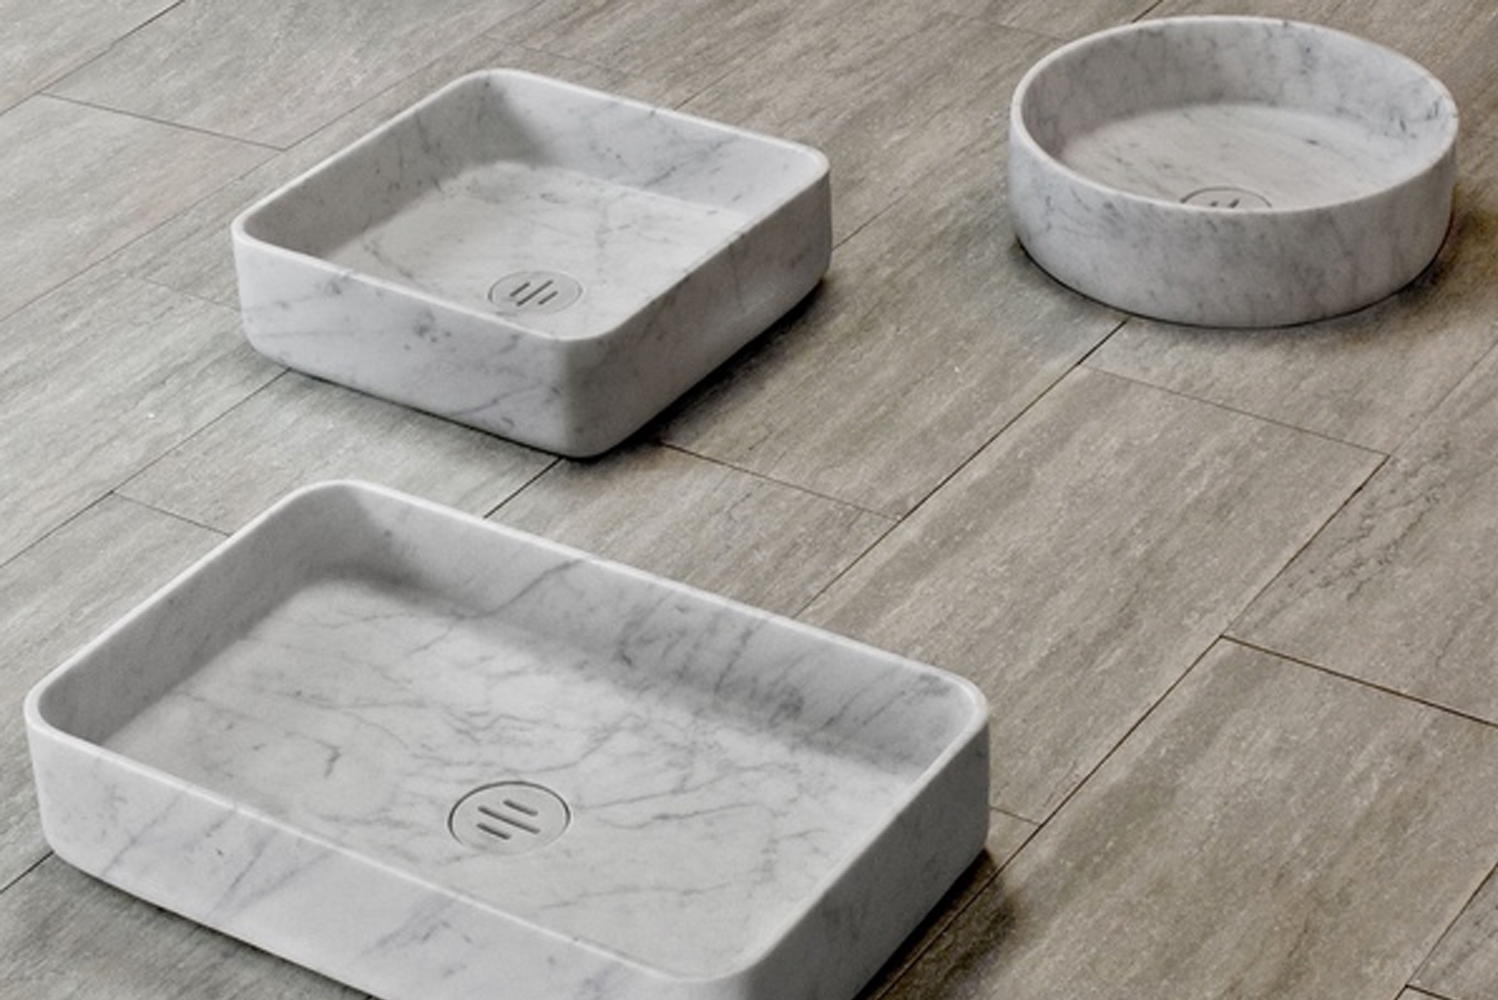 Slotted drain covers maintain the sleek, modern look of the sinks.